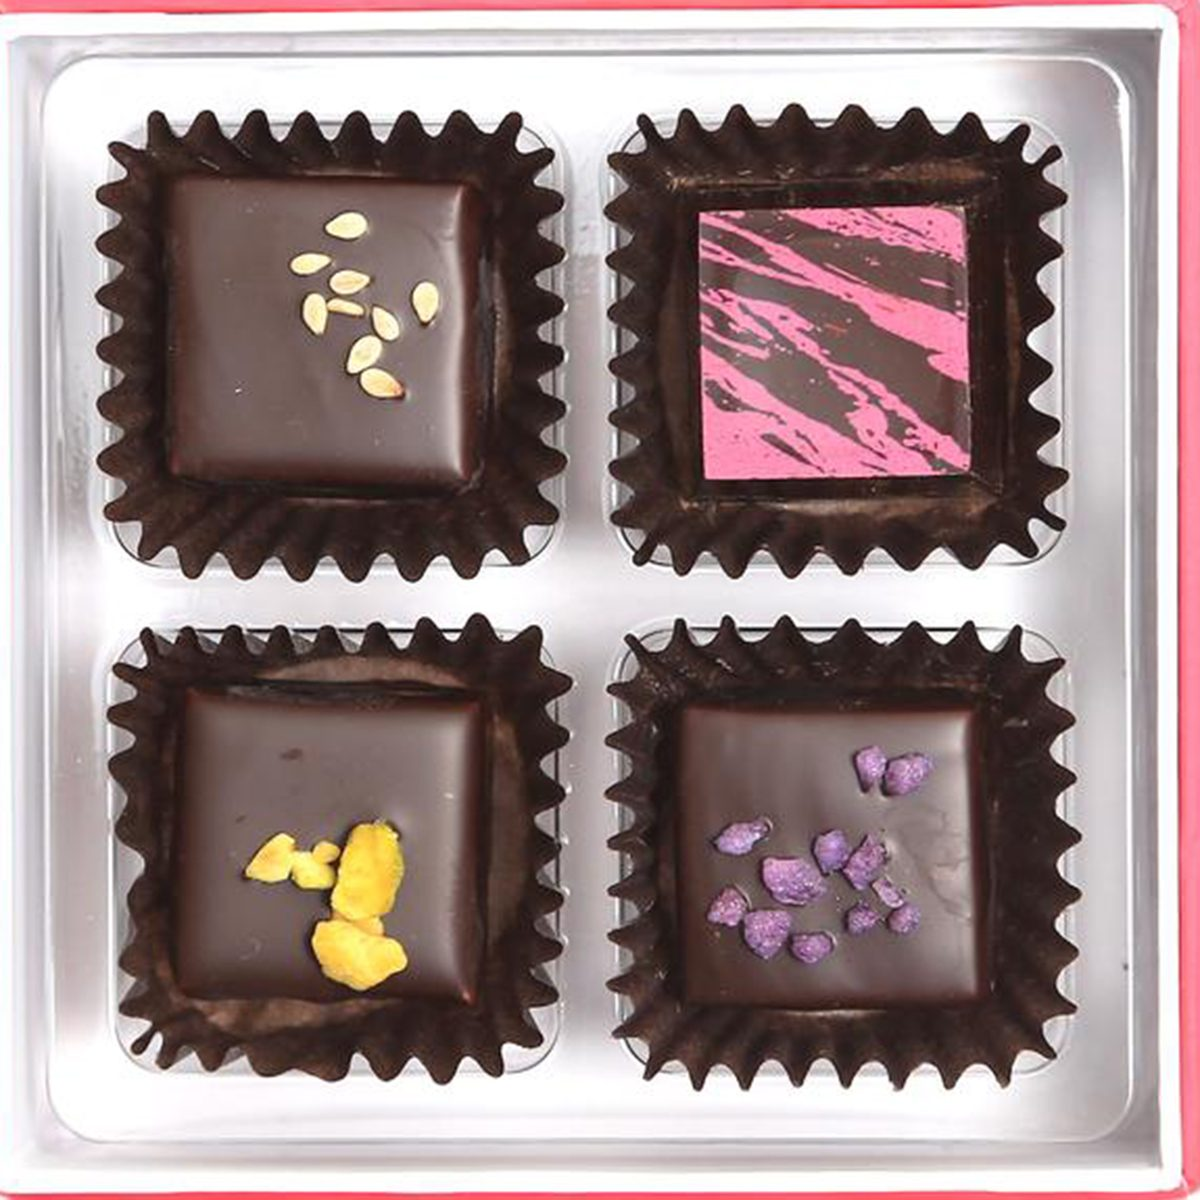 Zoë's Chocolate Company: The Signature Collection